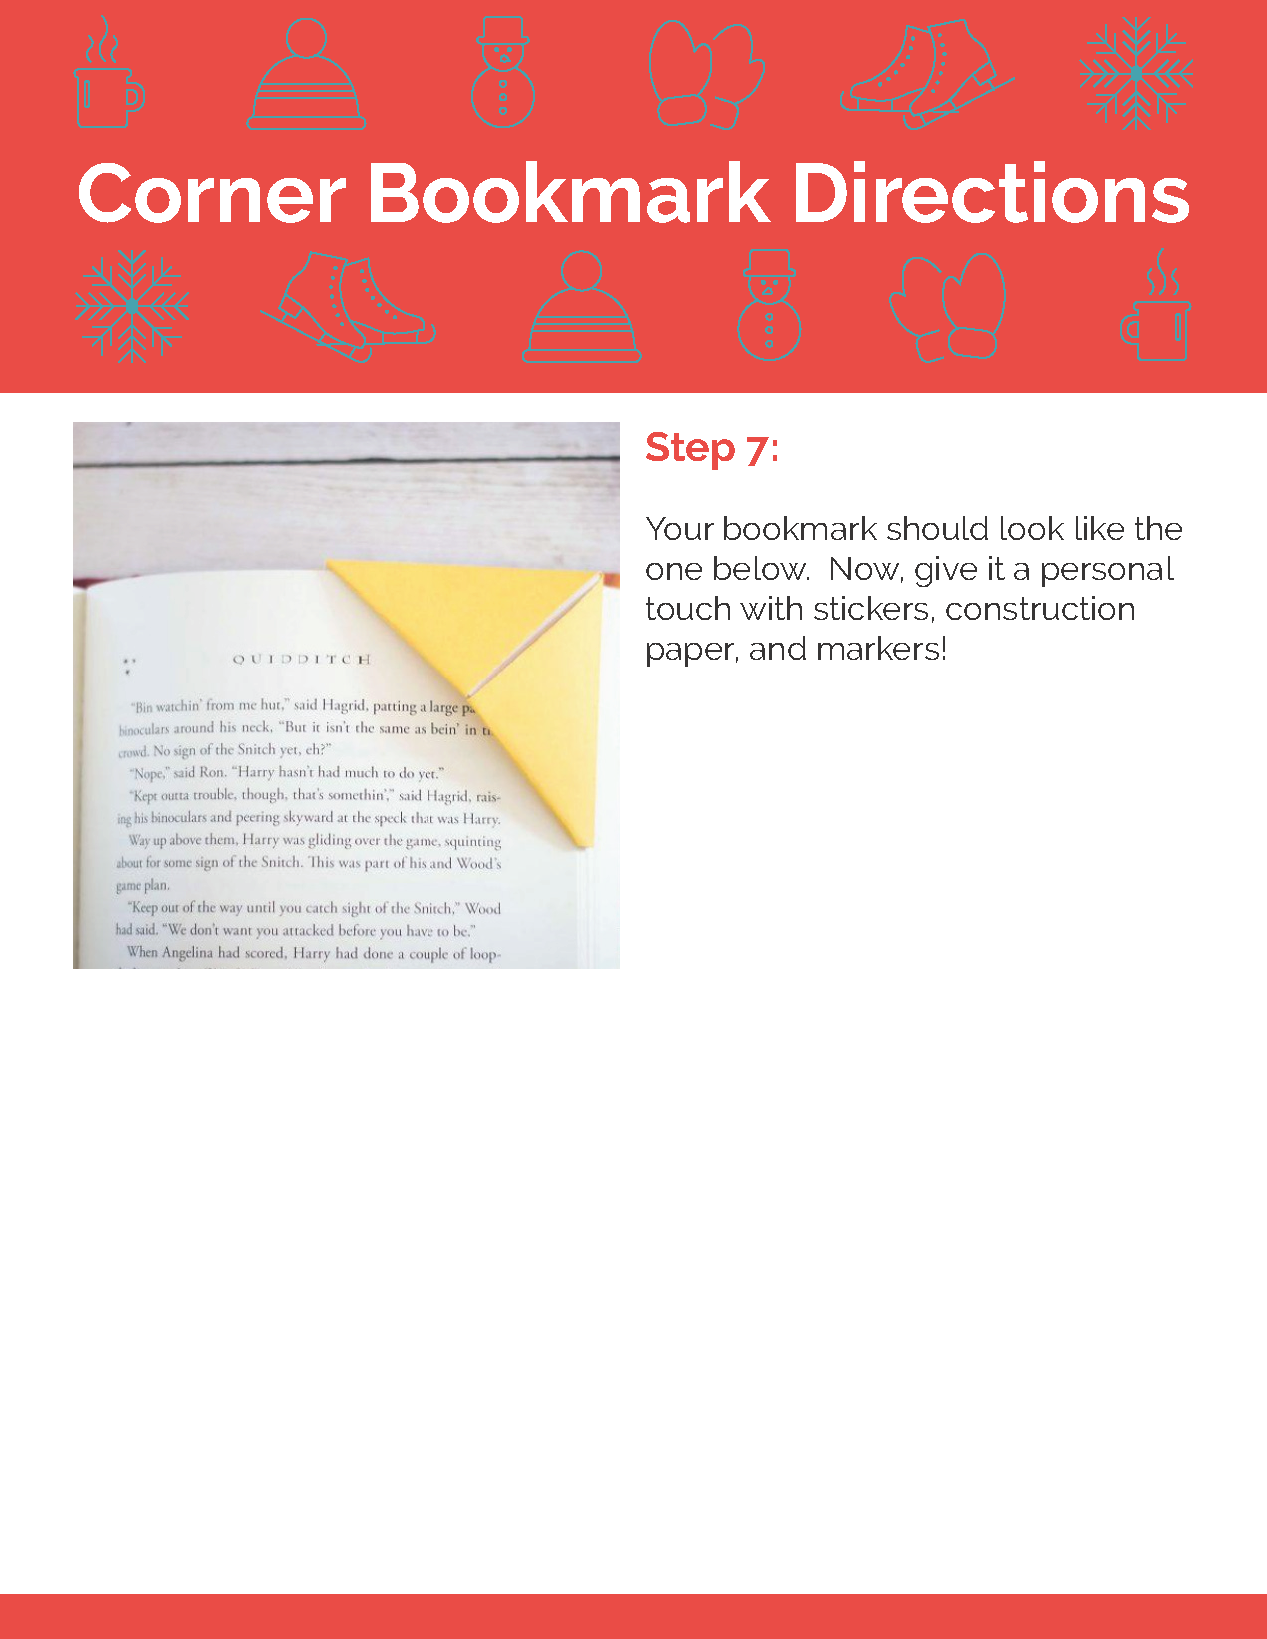 Winter Warmer_Corner Bookmark Directions_Page_4.png